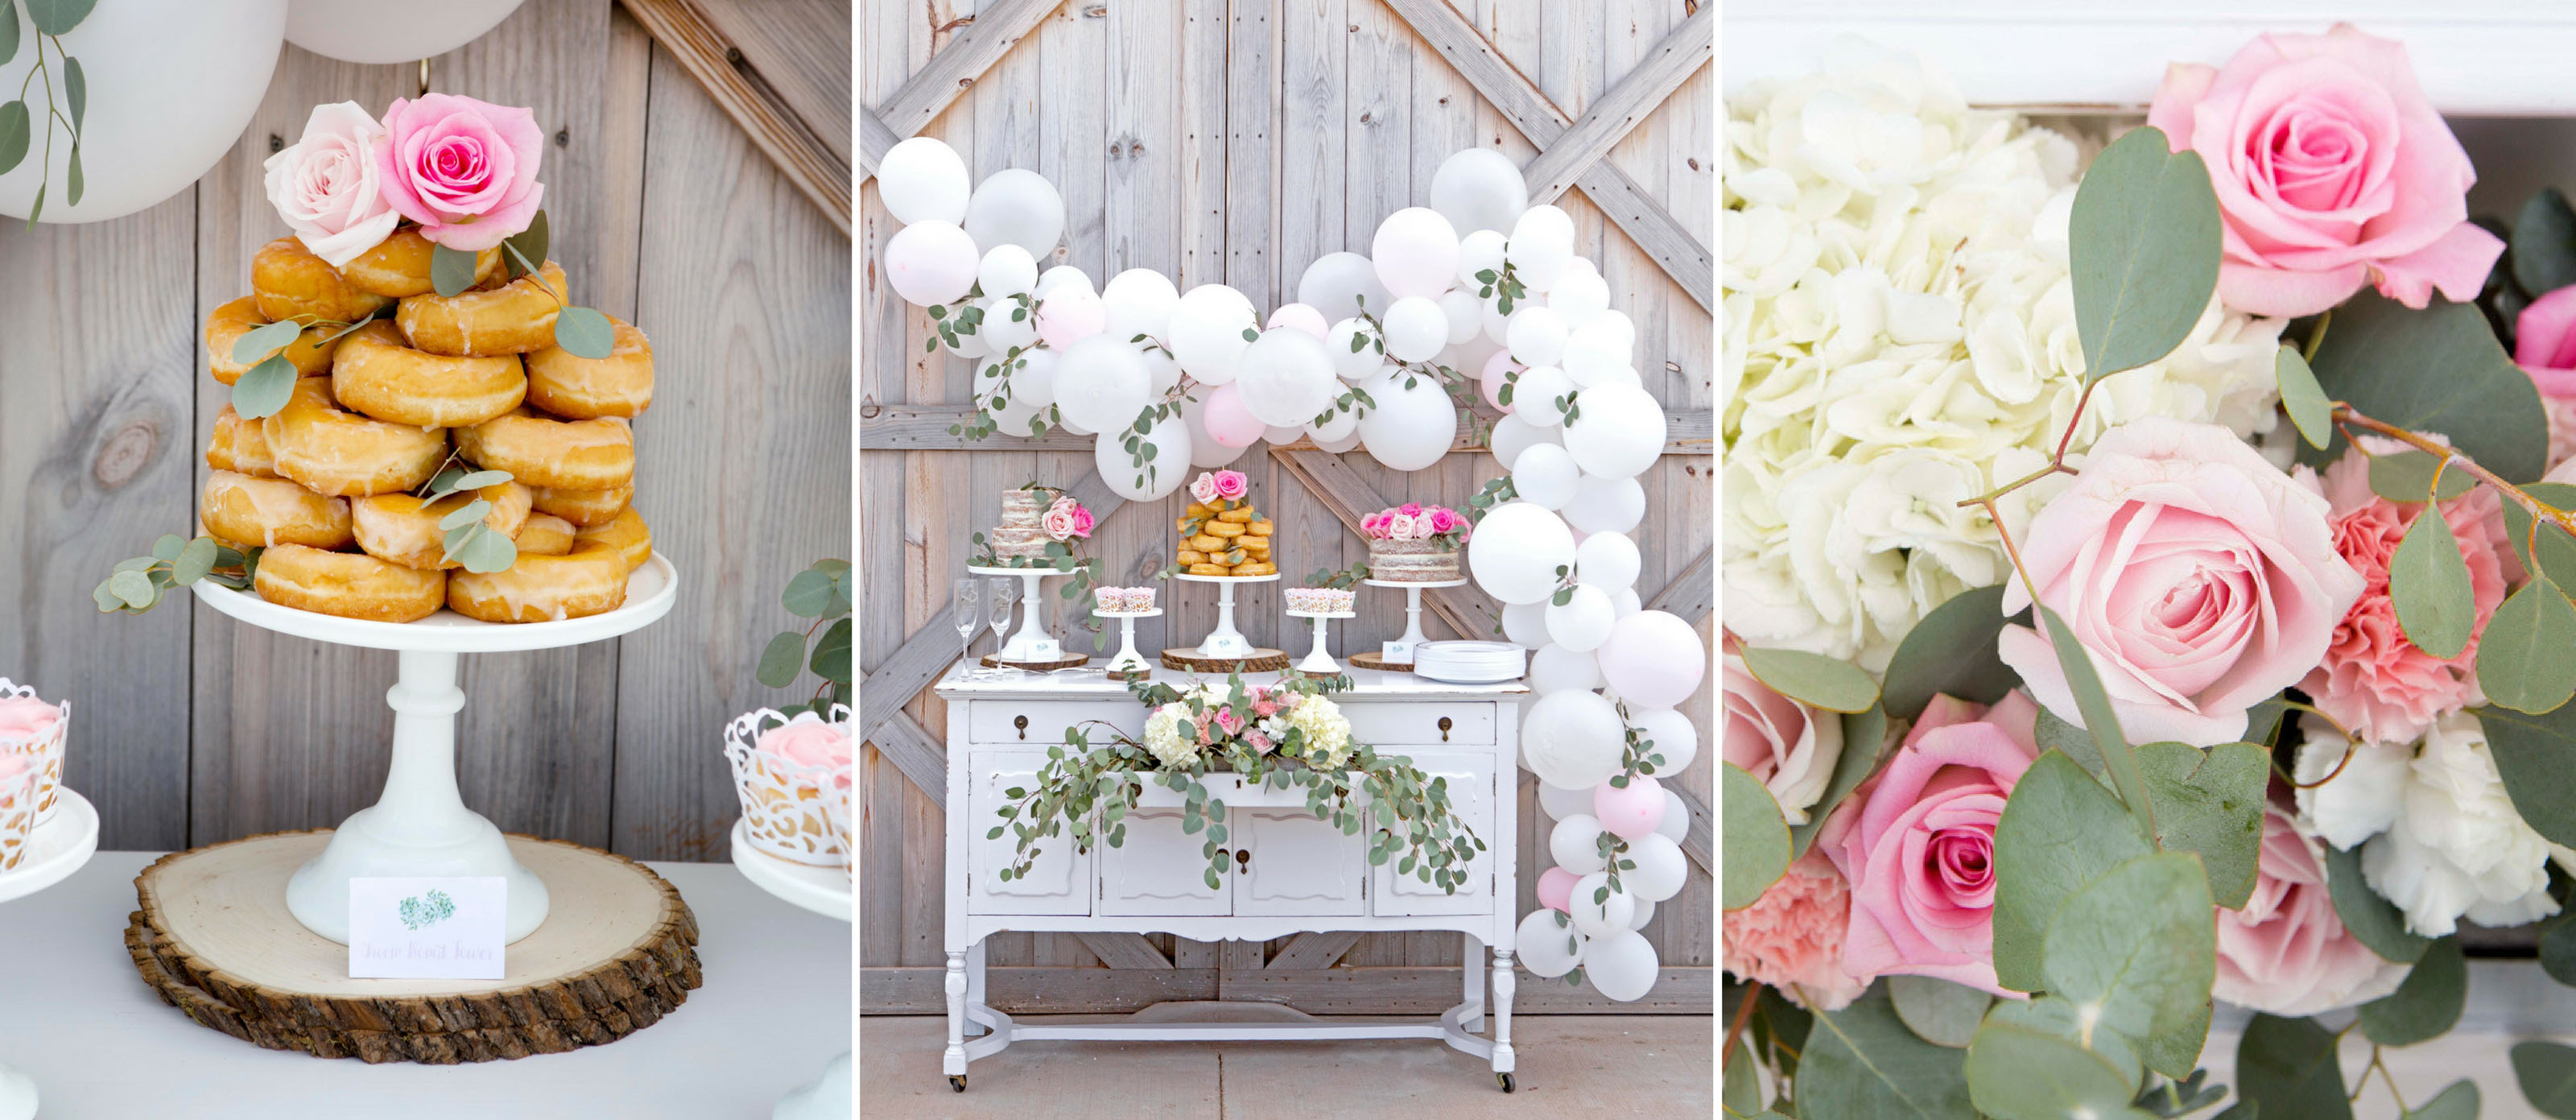 Take a look at this gorgeous Rustic Wedding Dessert Table | Fun365